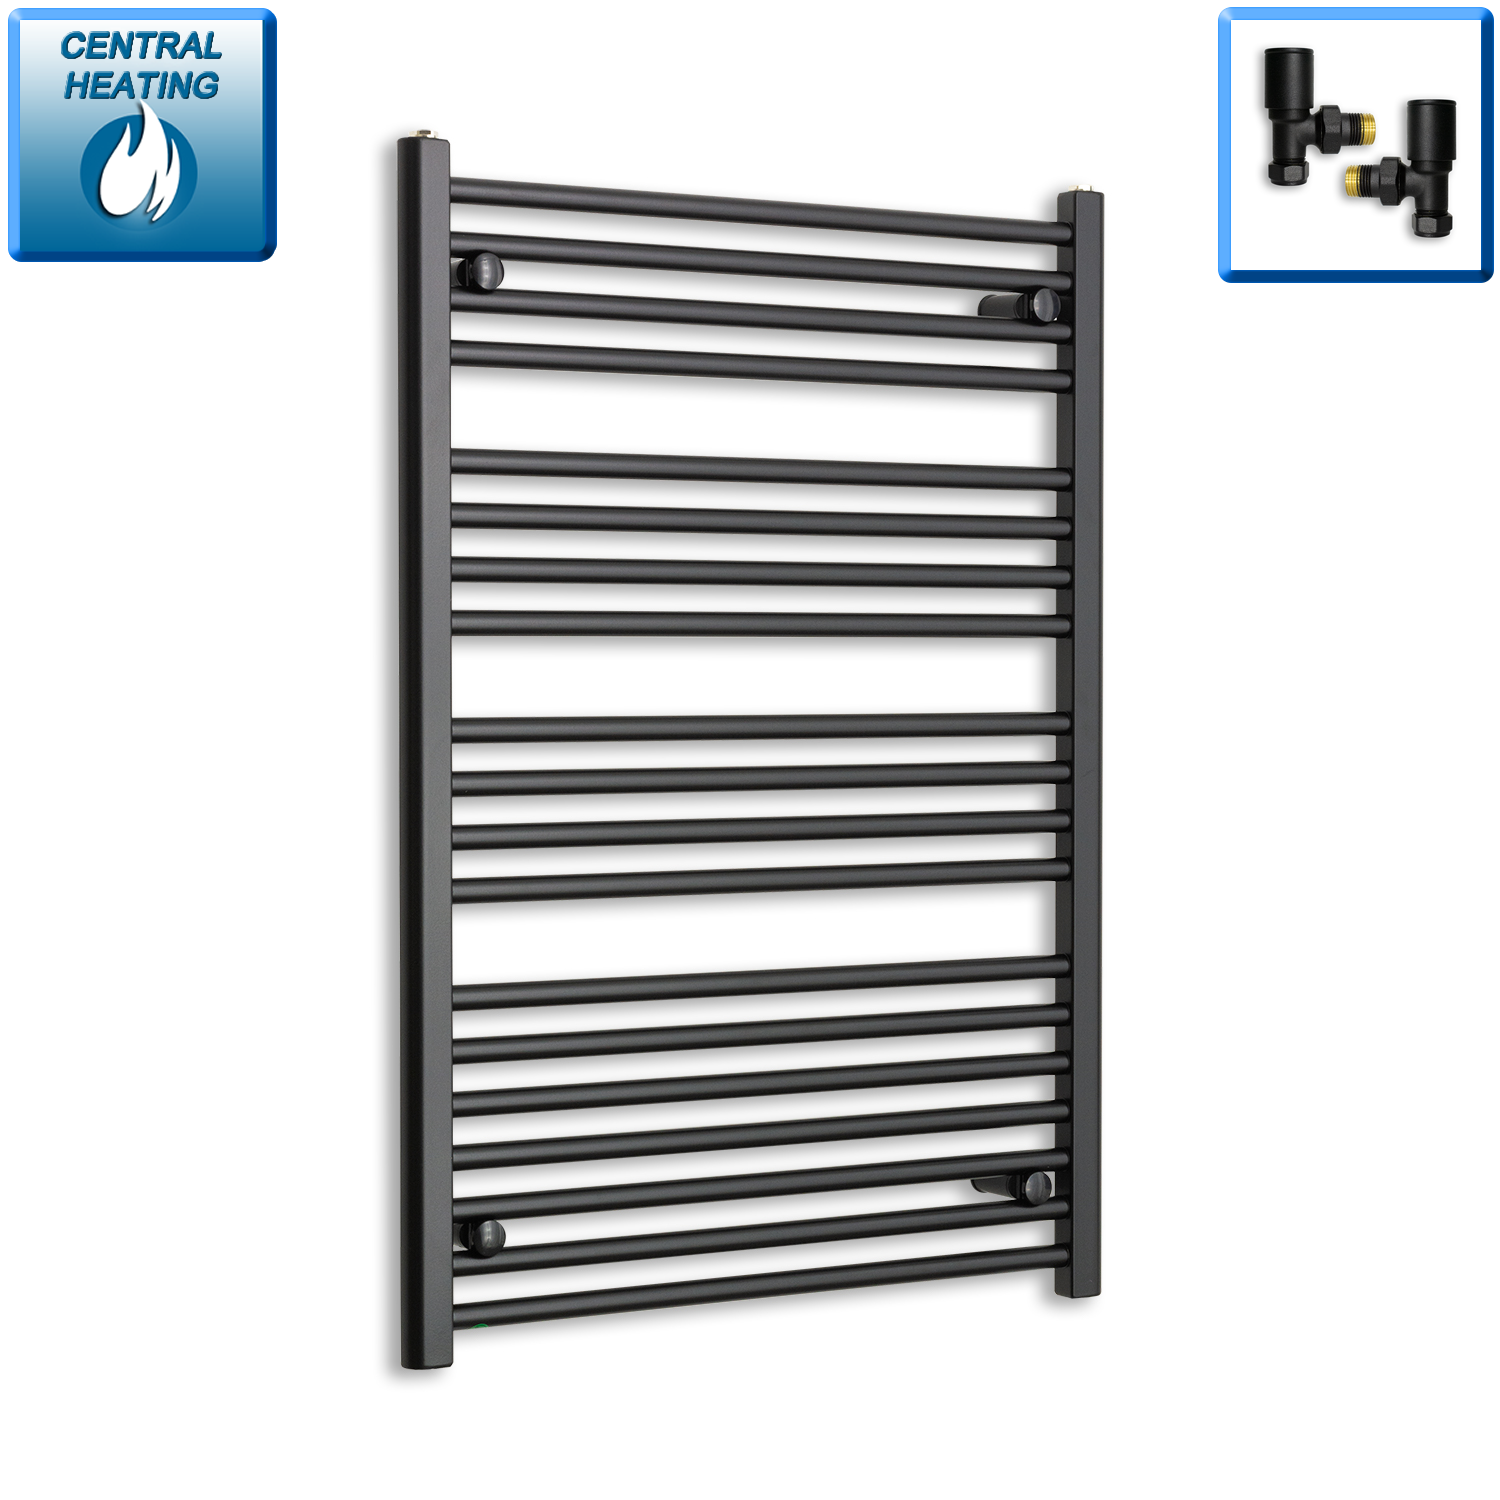 700mm Wide 1000mmHigh Black Towel Rail Radiator With Angled Valve